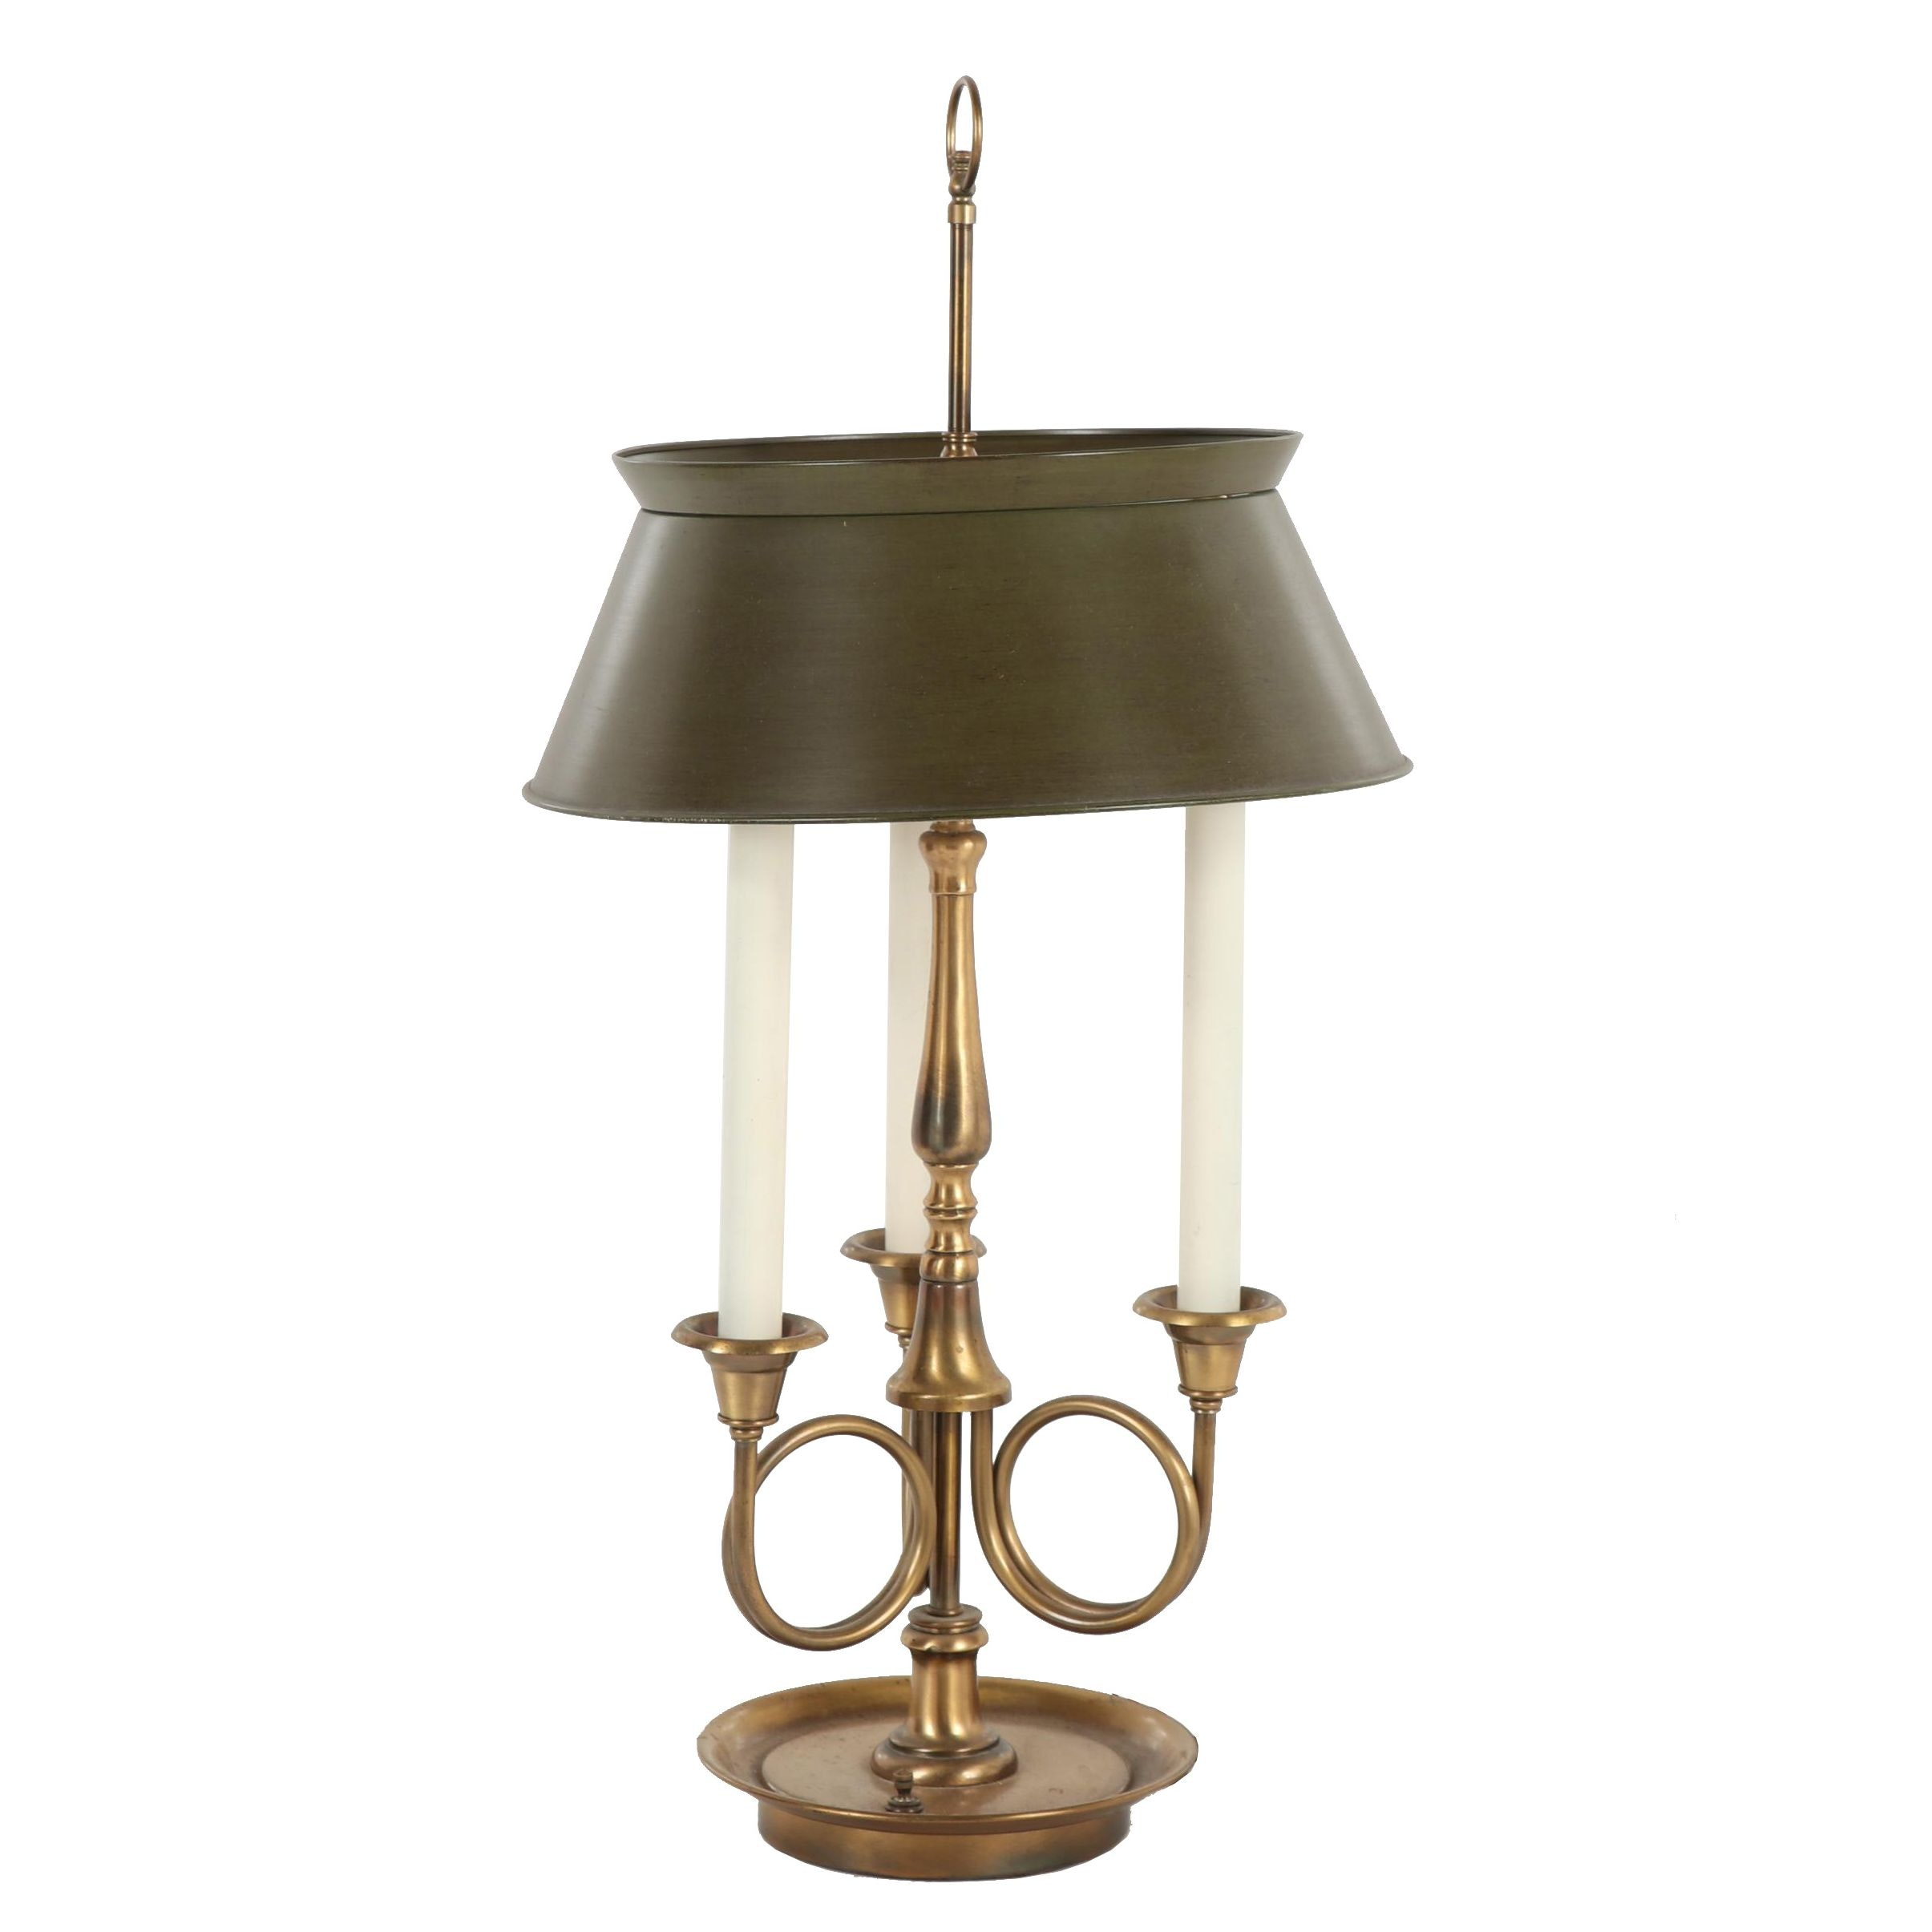 Bouillotte Style Table Lamp with Metal Shade, Attributed to Frederick Cooper